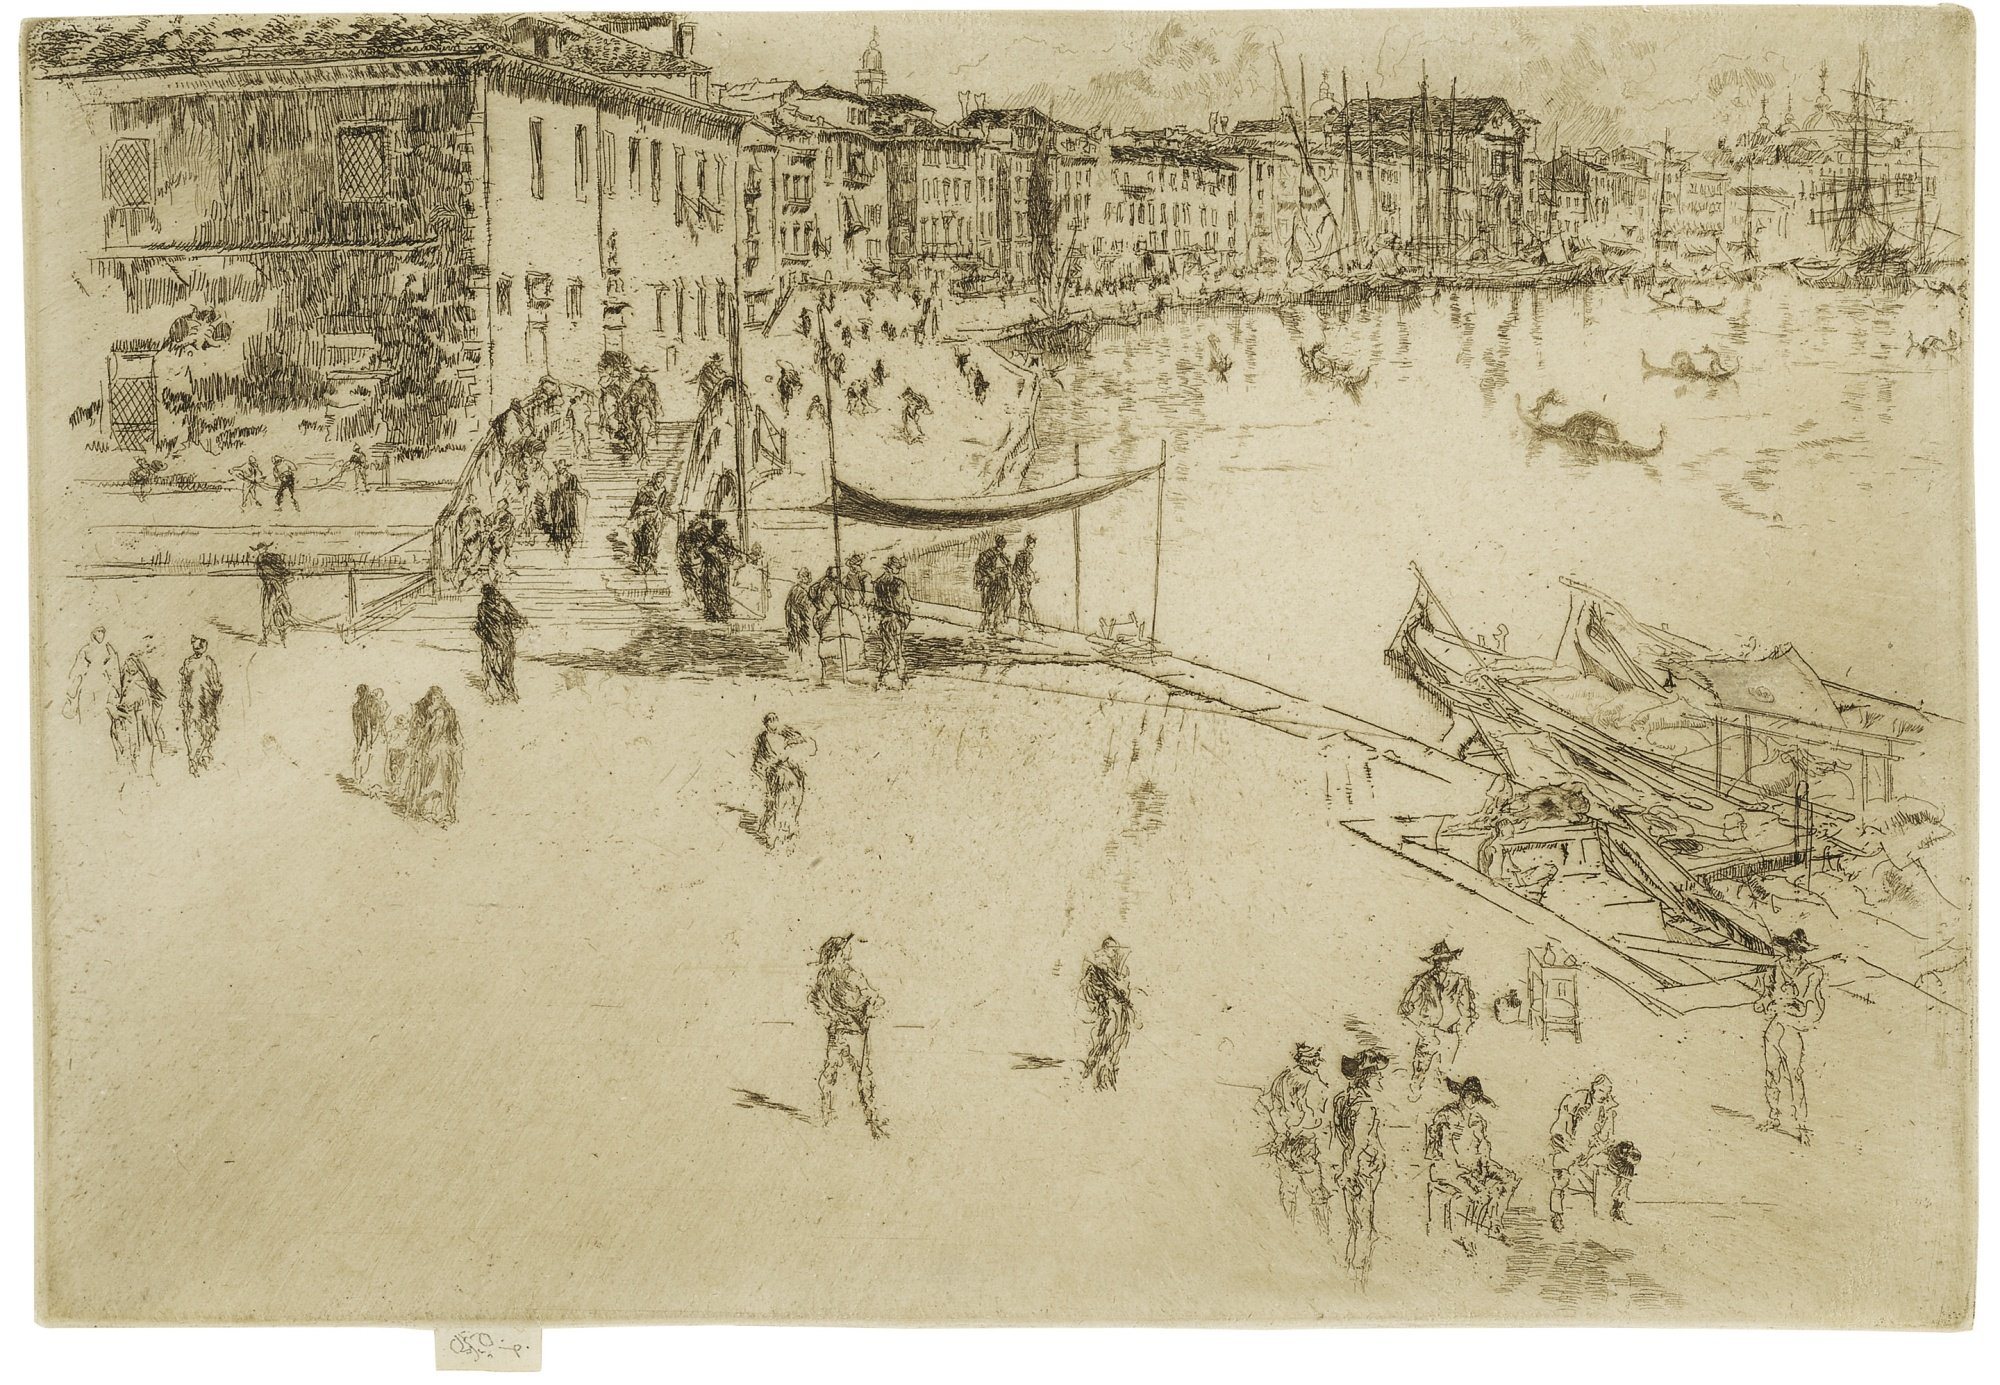 James Abbott McNeill Whistler-The Riva, No. 2 (K. 206; G. 230)-1880